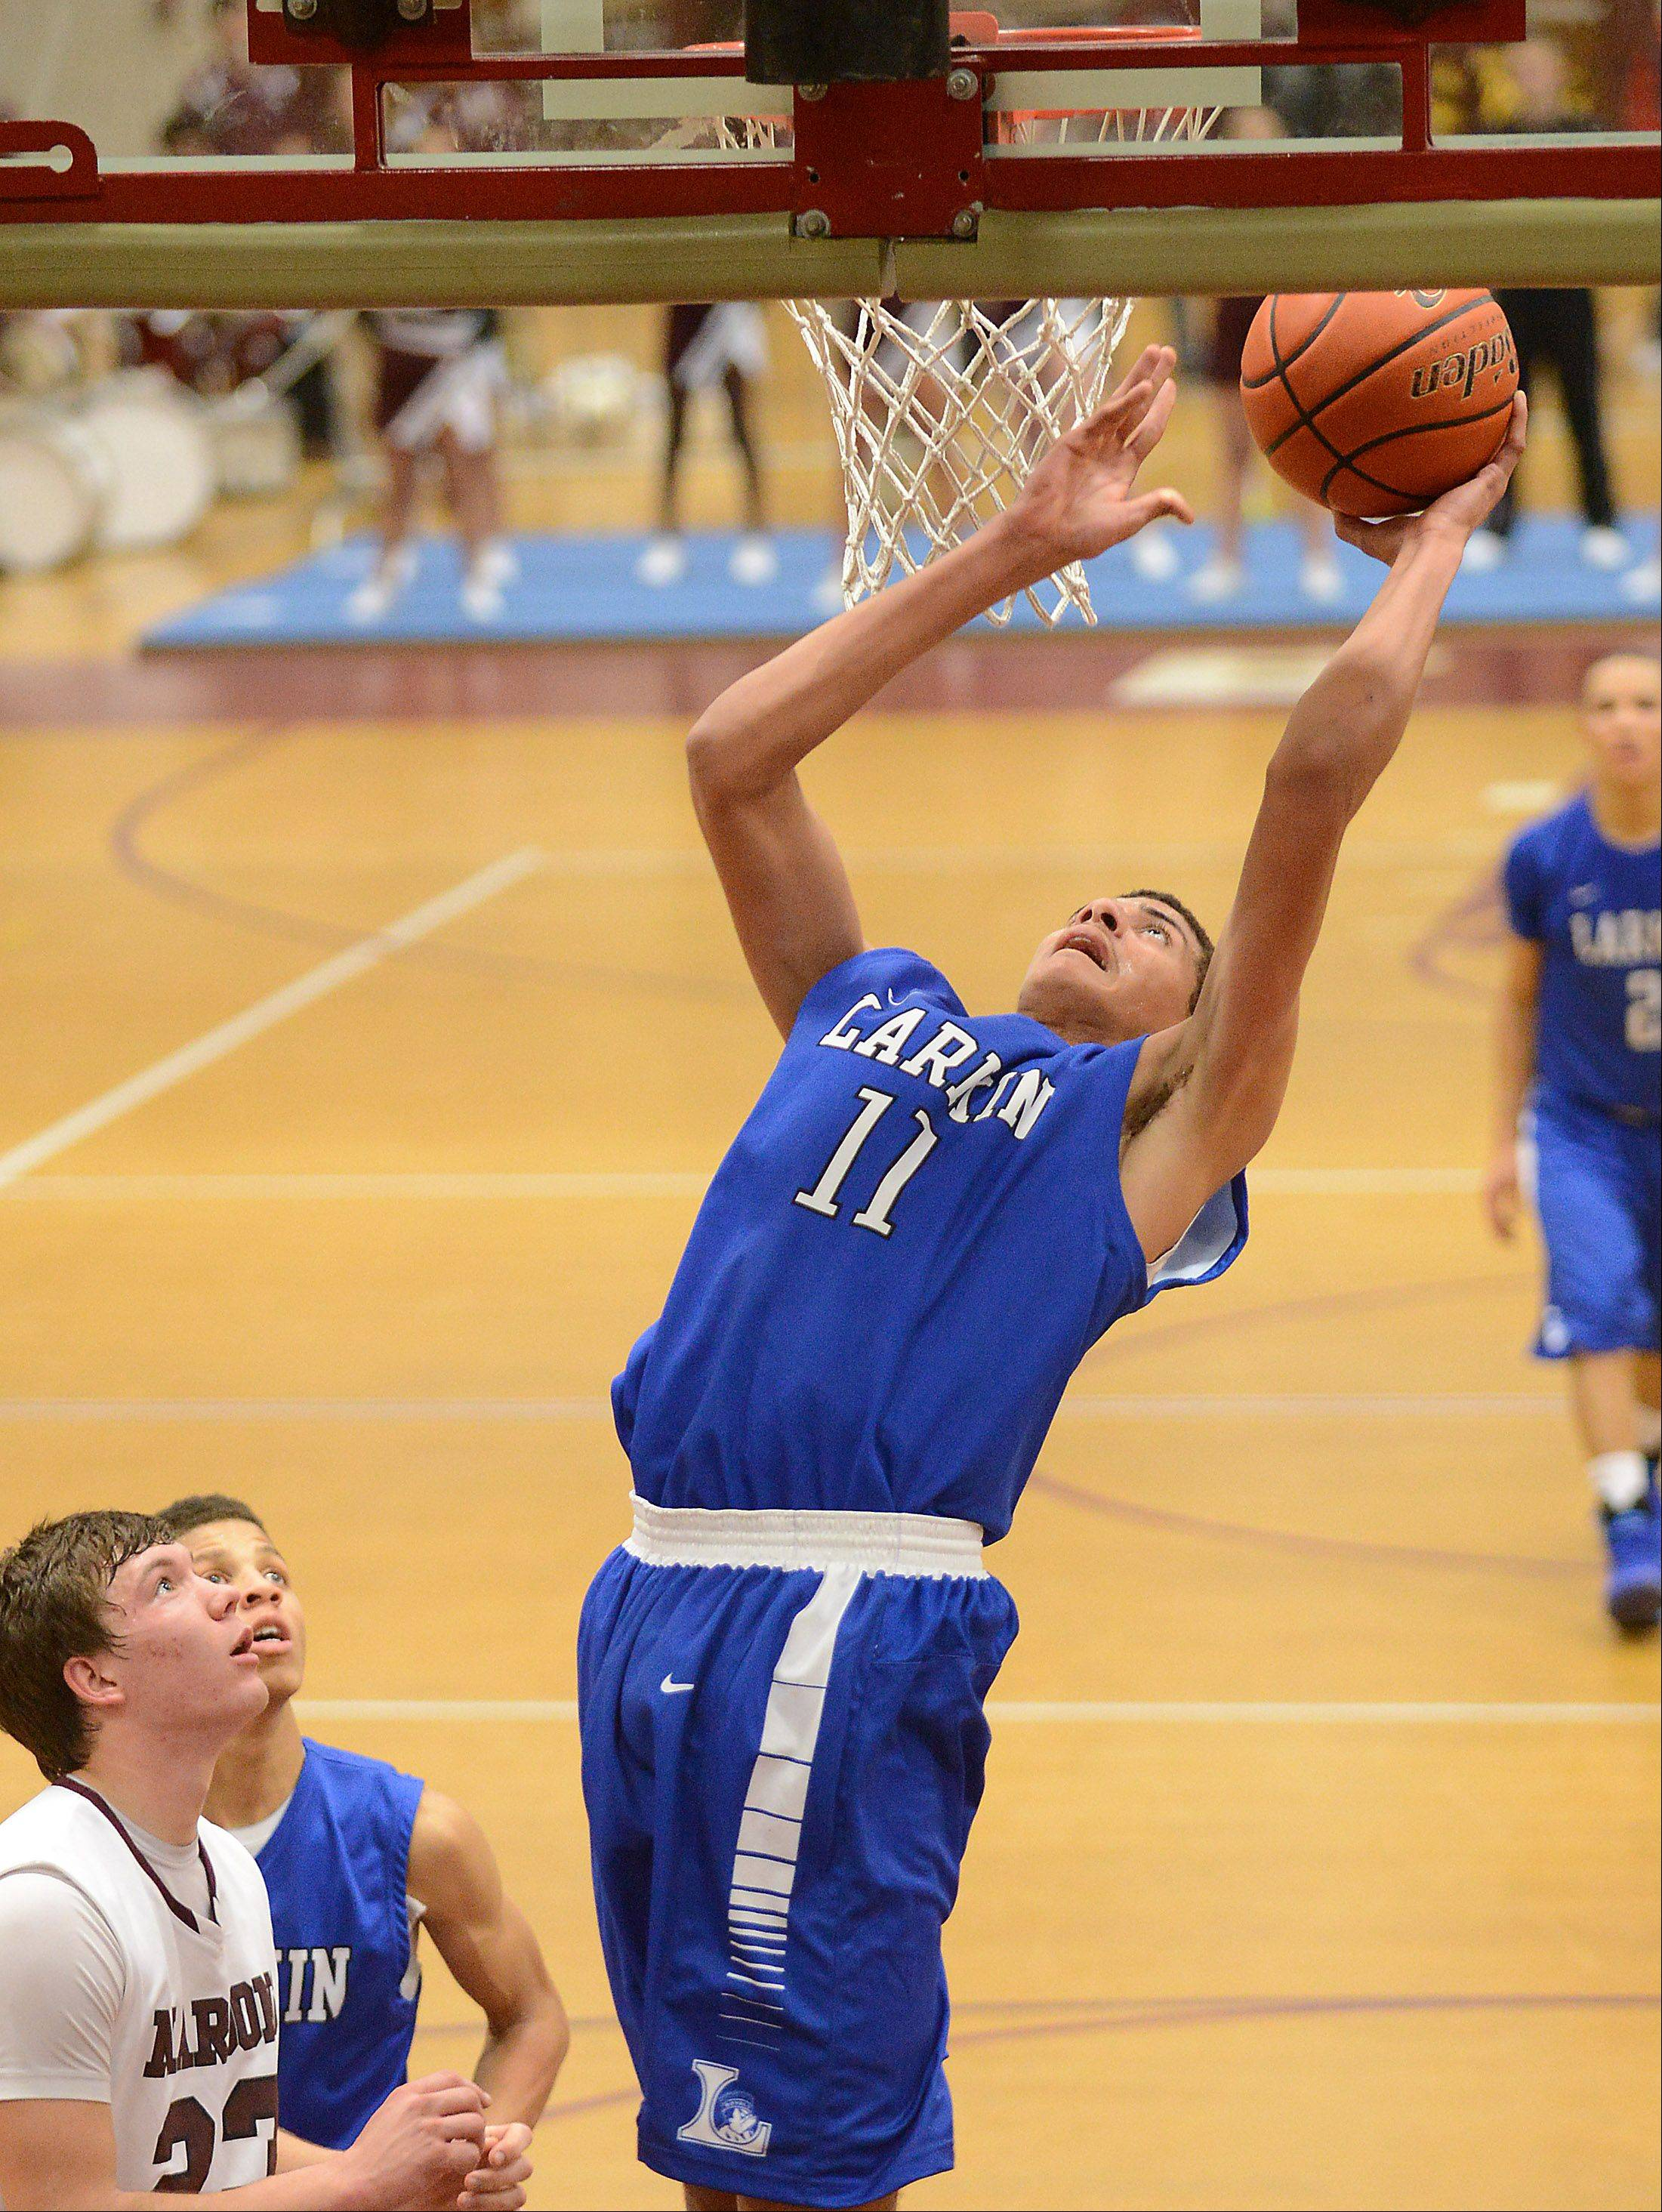 Larkin's Christian Negron (11) goes up alone under the basket during Thursday's game at Elgin.